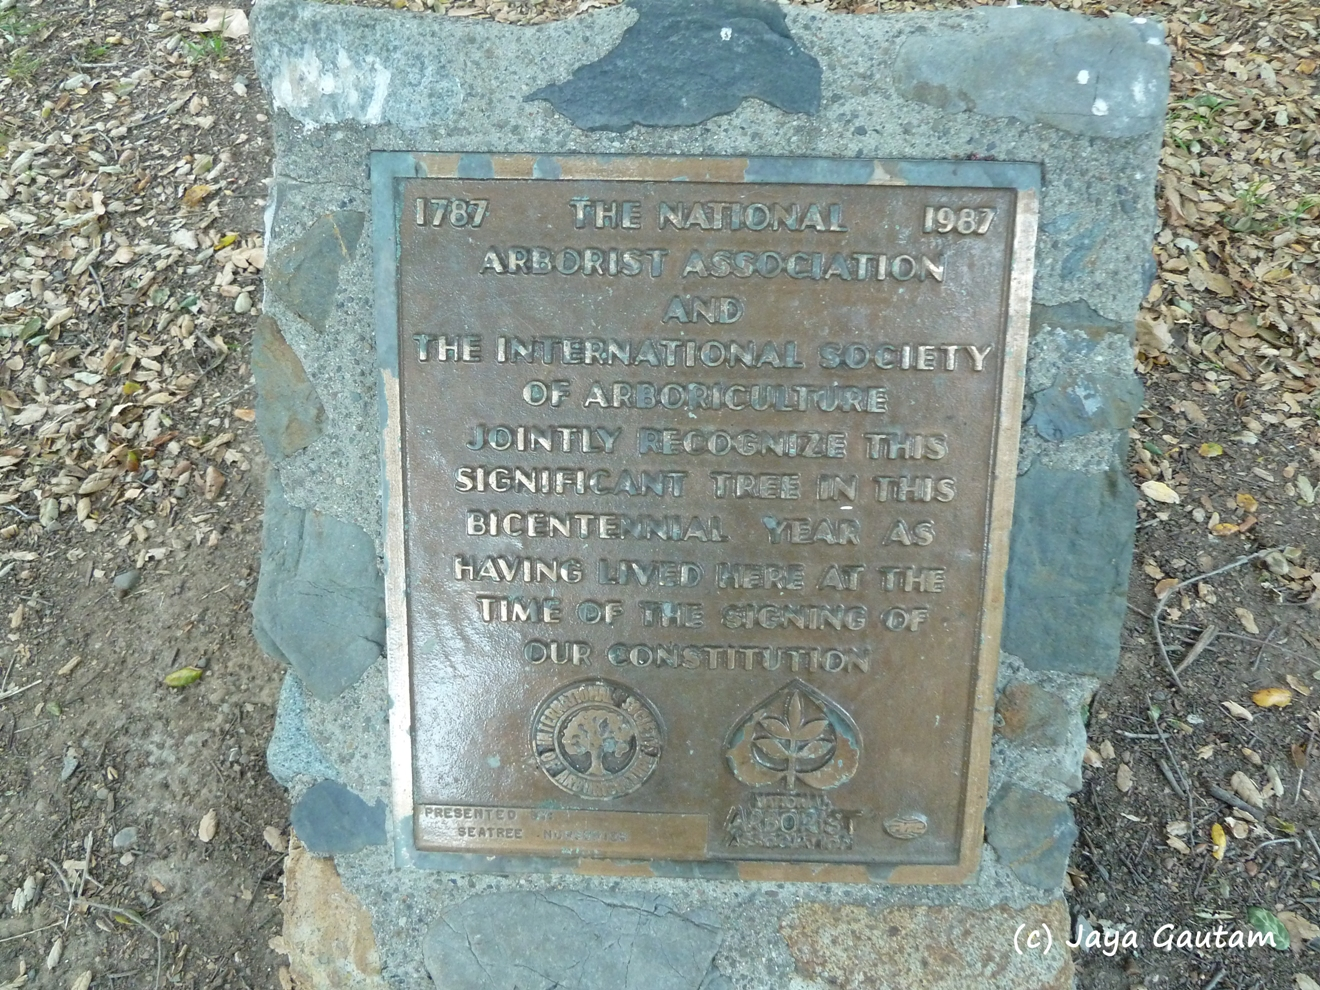 Plaque commemorating a tree's 220+ year existence